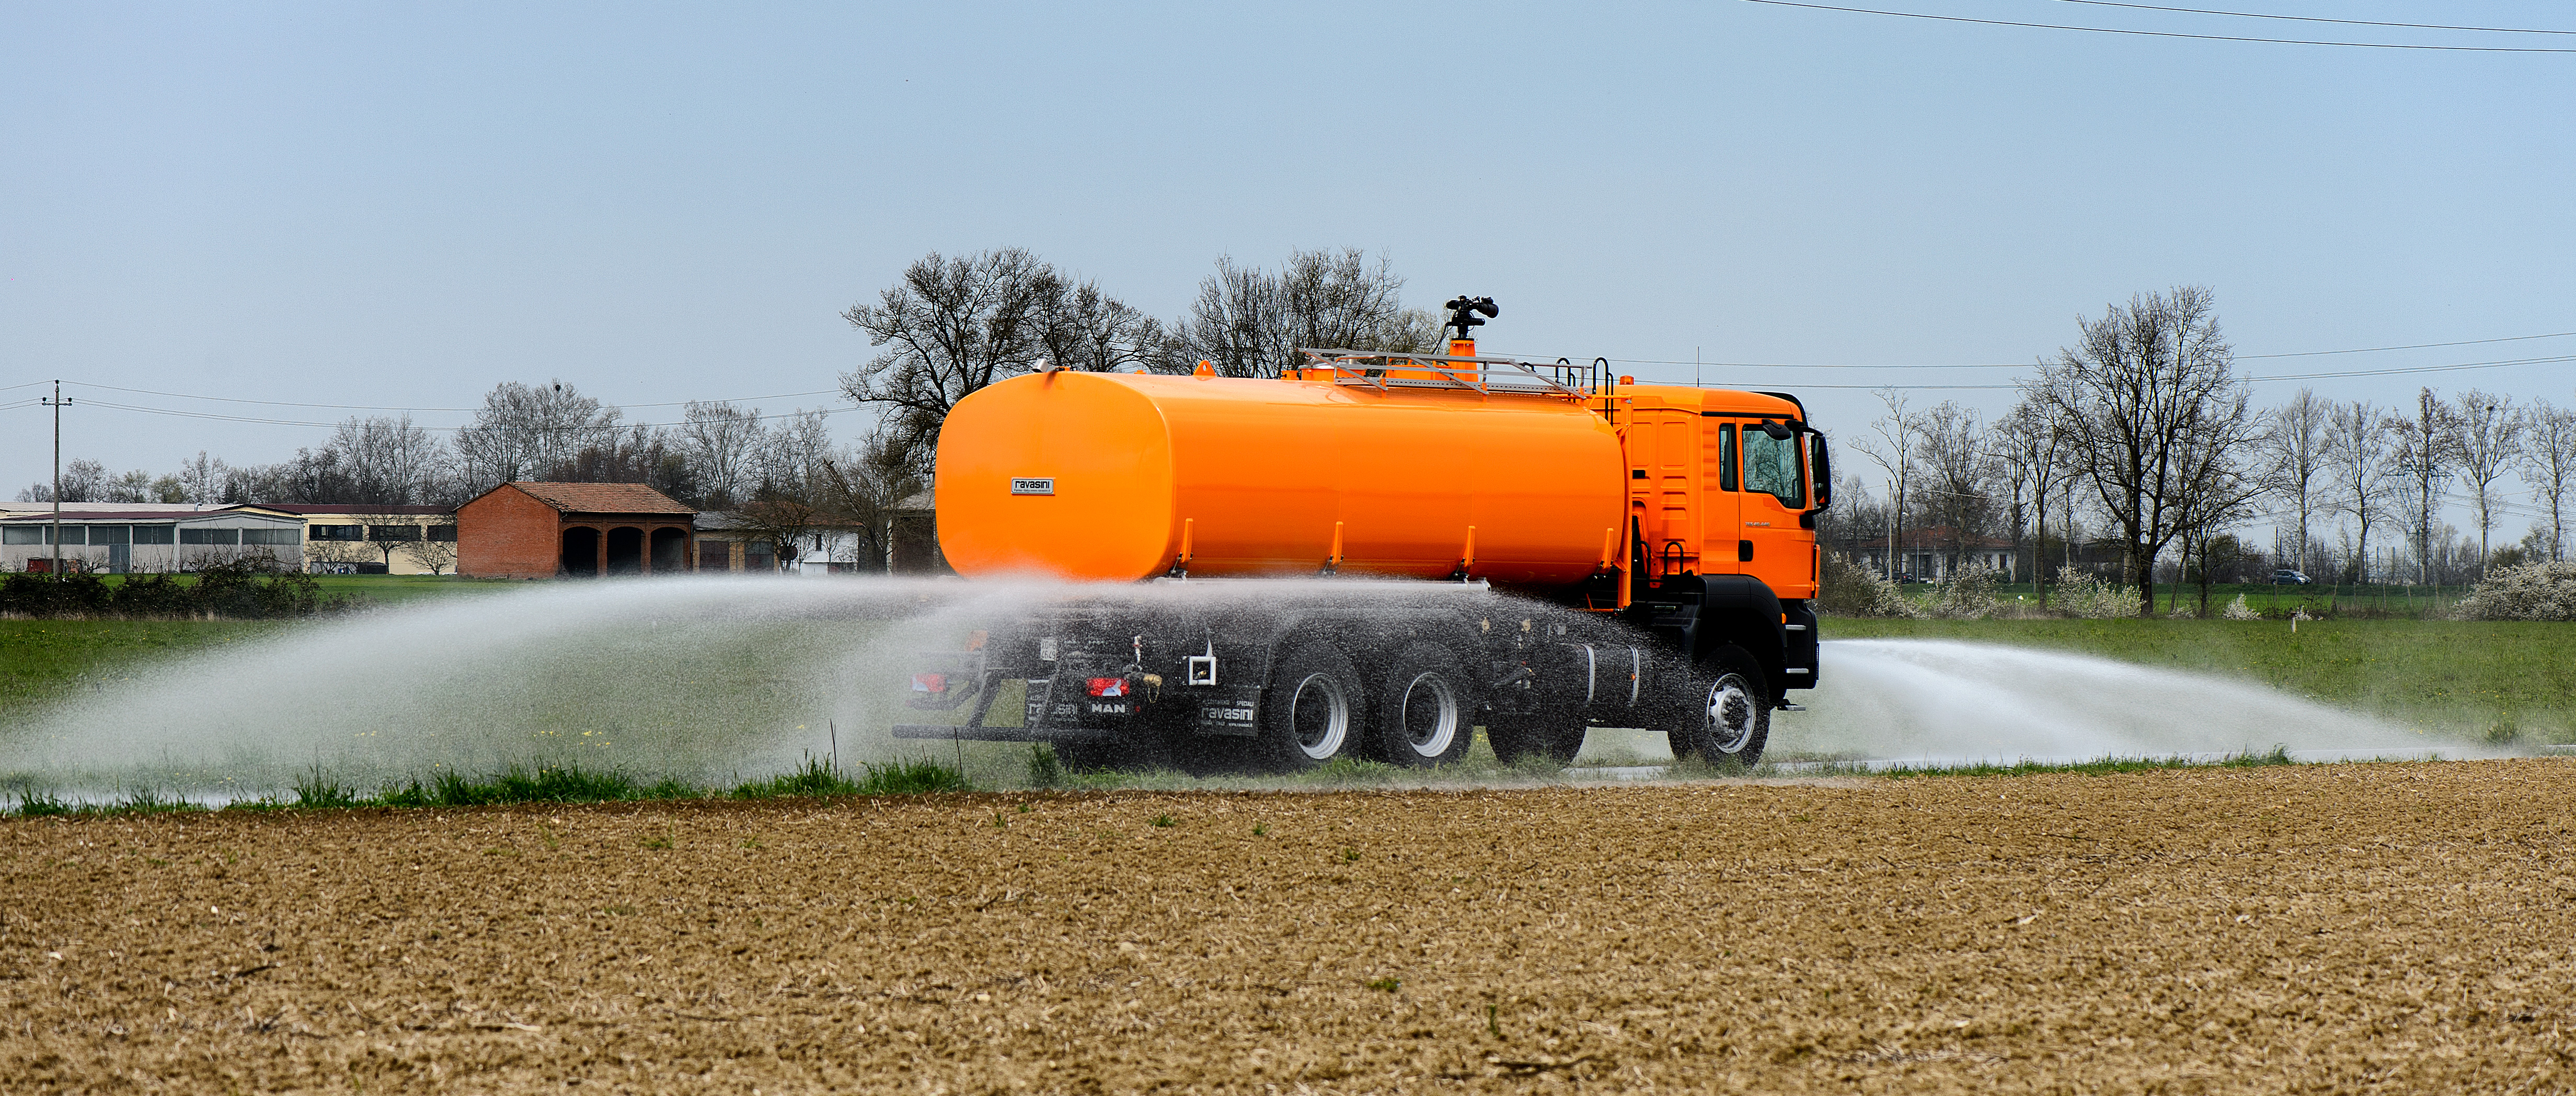 Man-water-tanker-truck